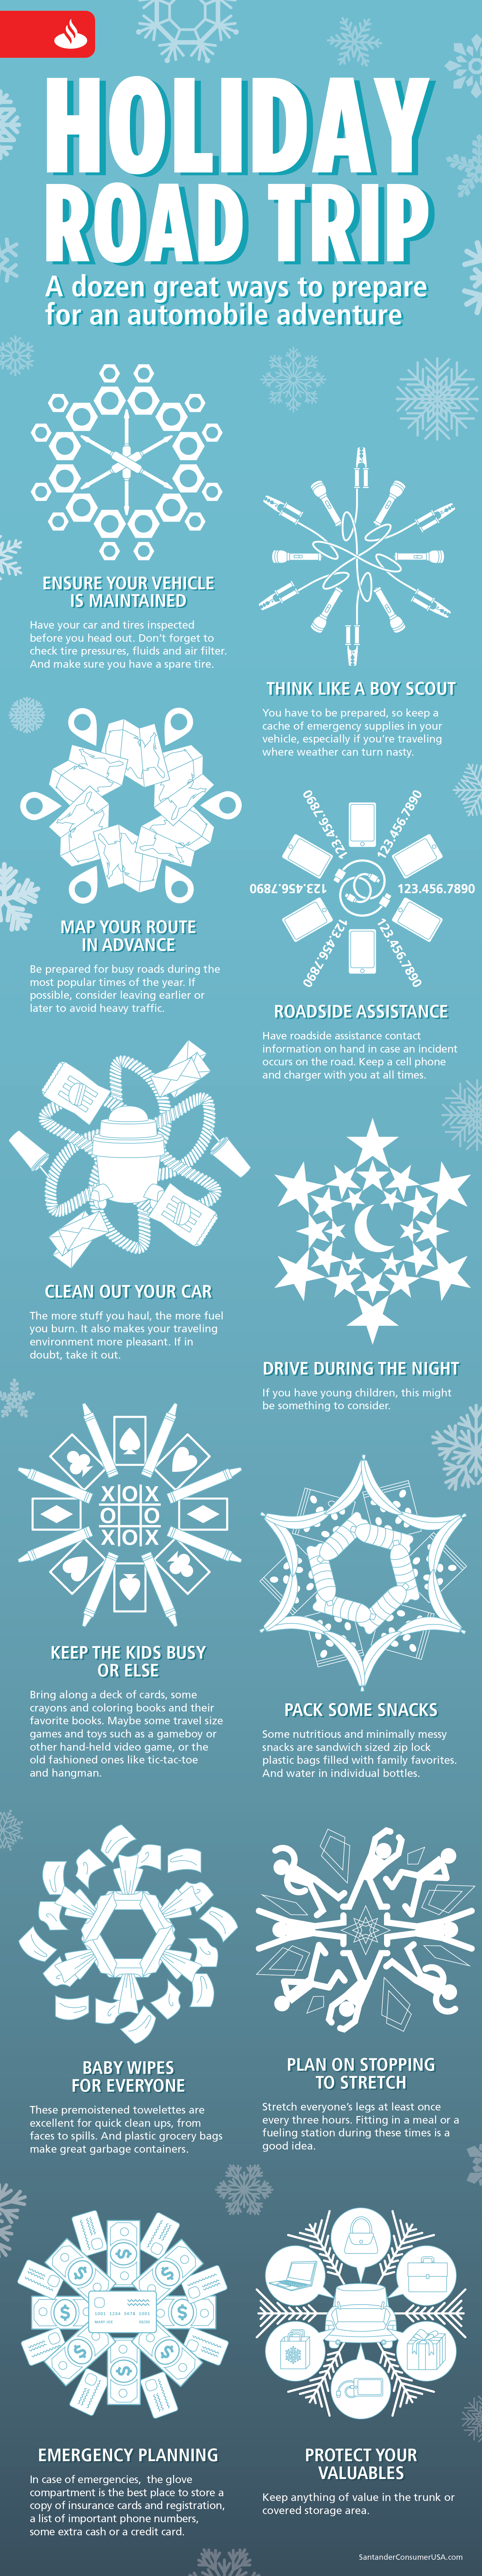 Holiday Road Trip infographic